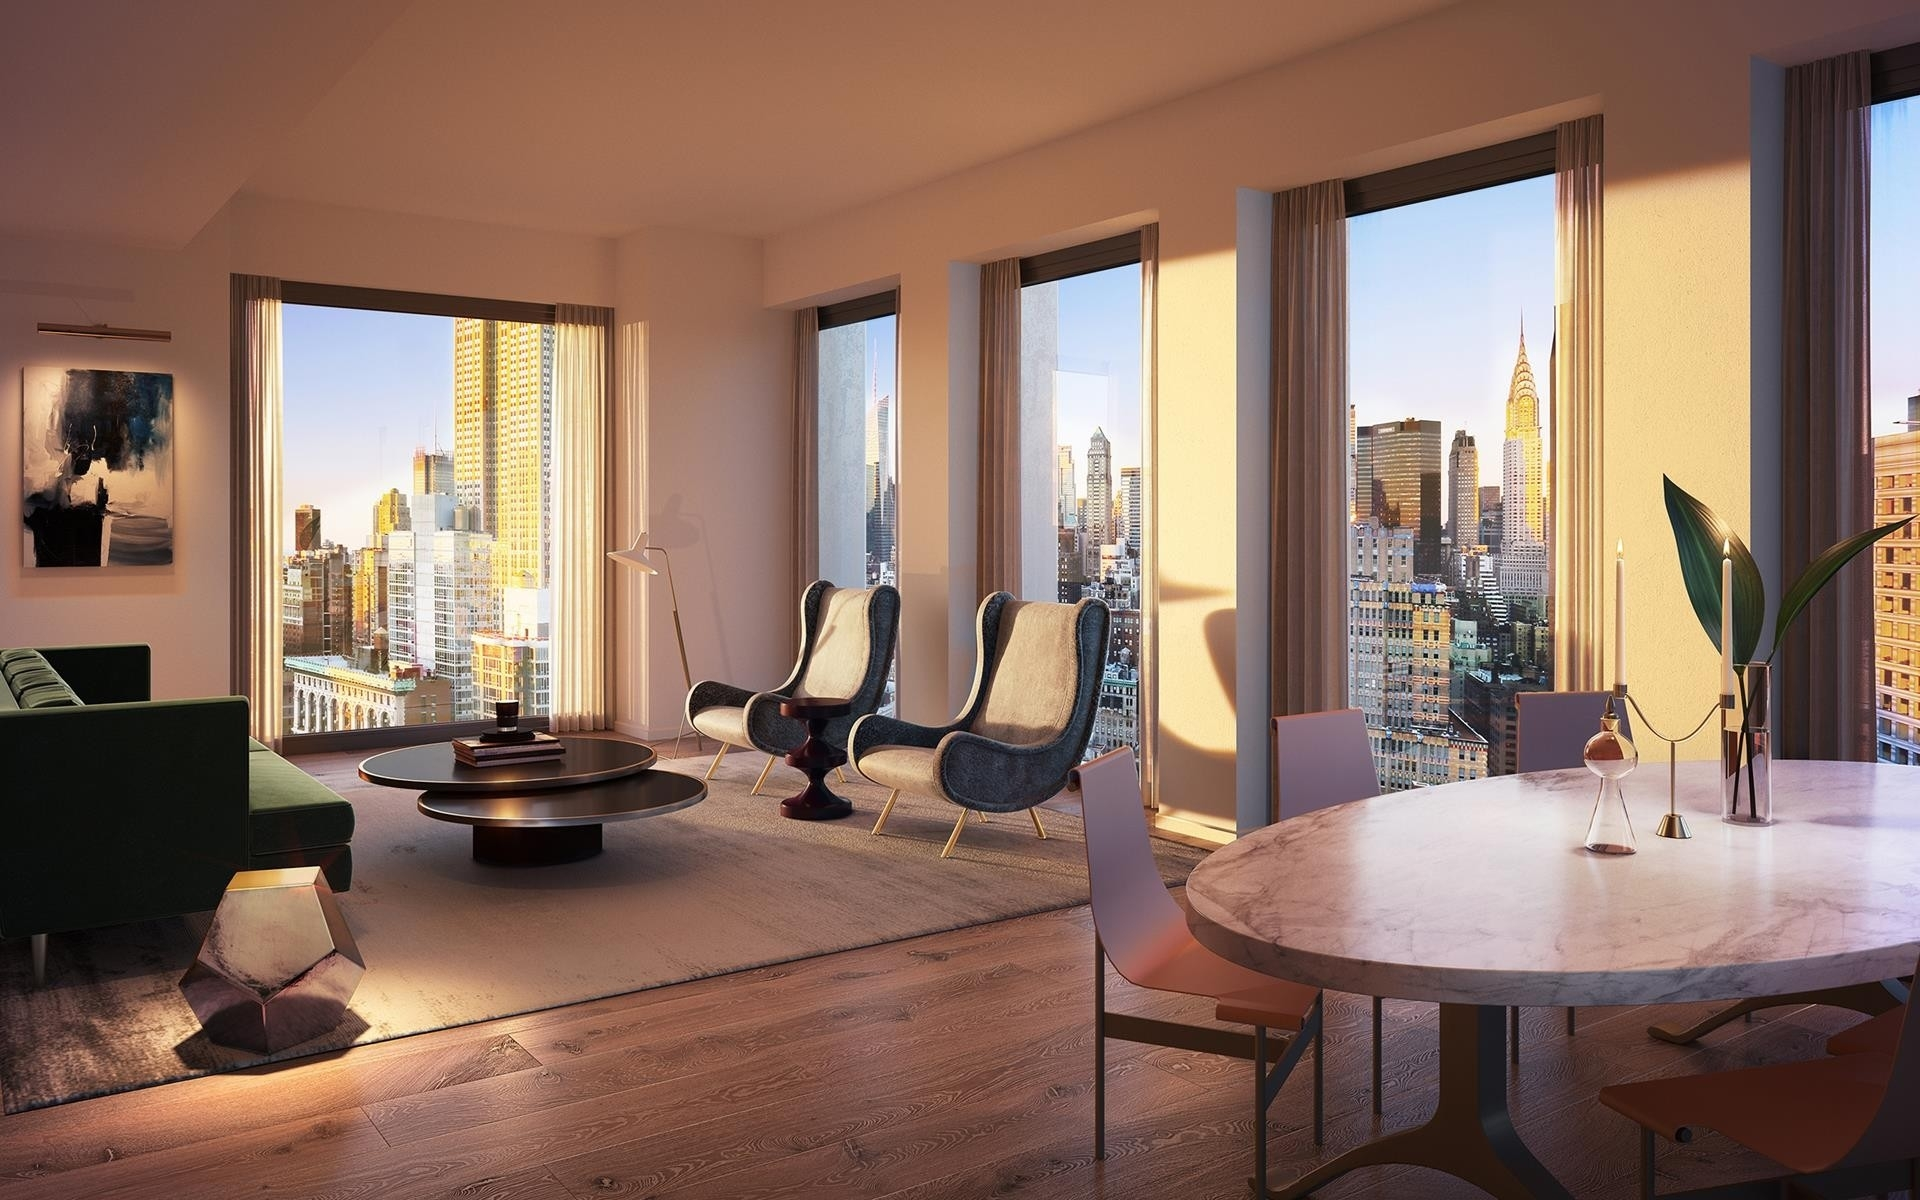 2. Condominiums for Sale at 30 East 31st St, 6B NoMad, New York, NY 10016